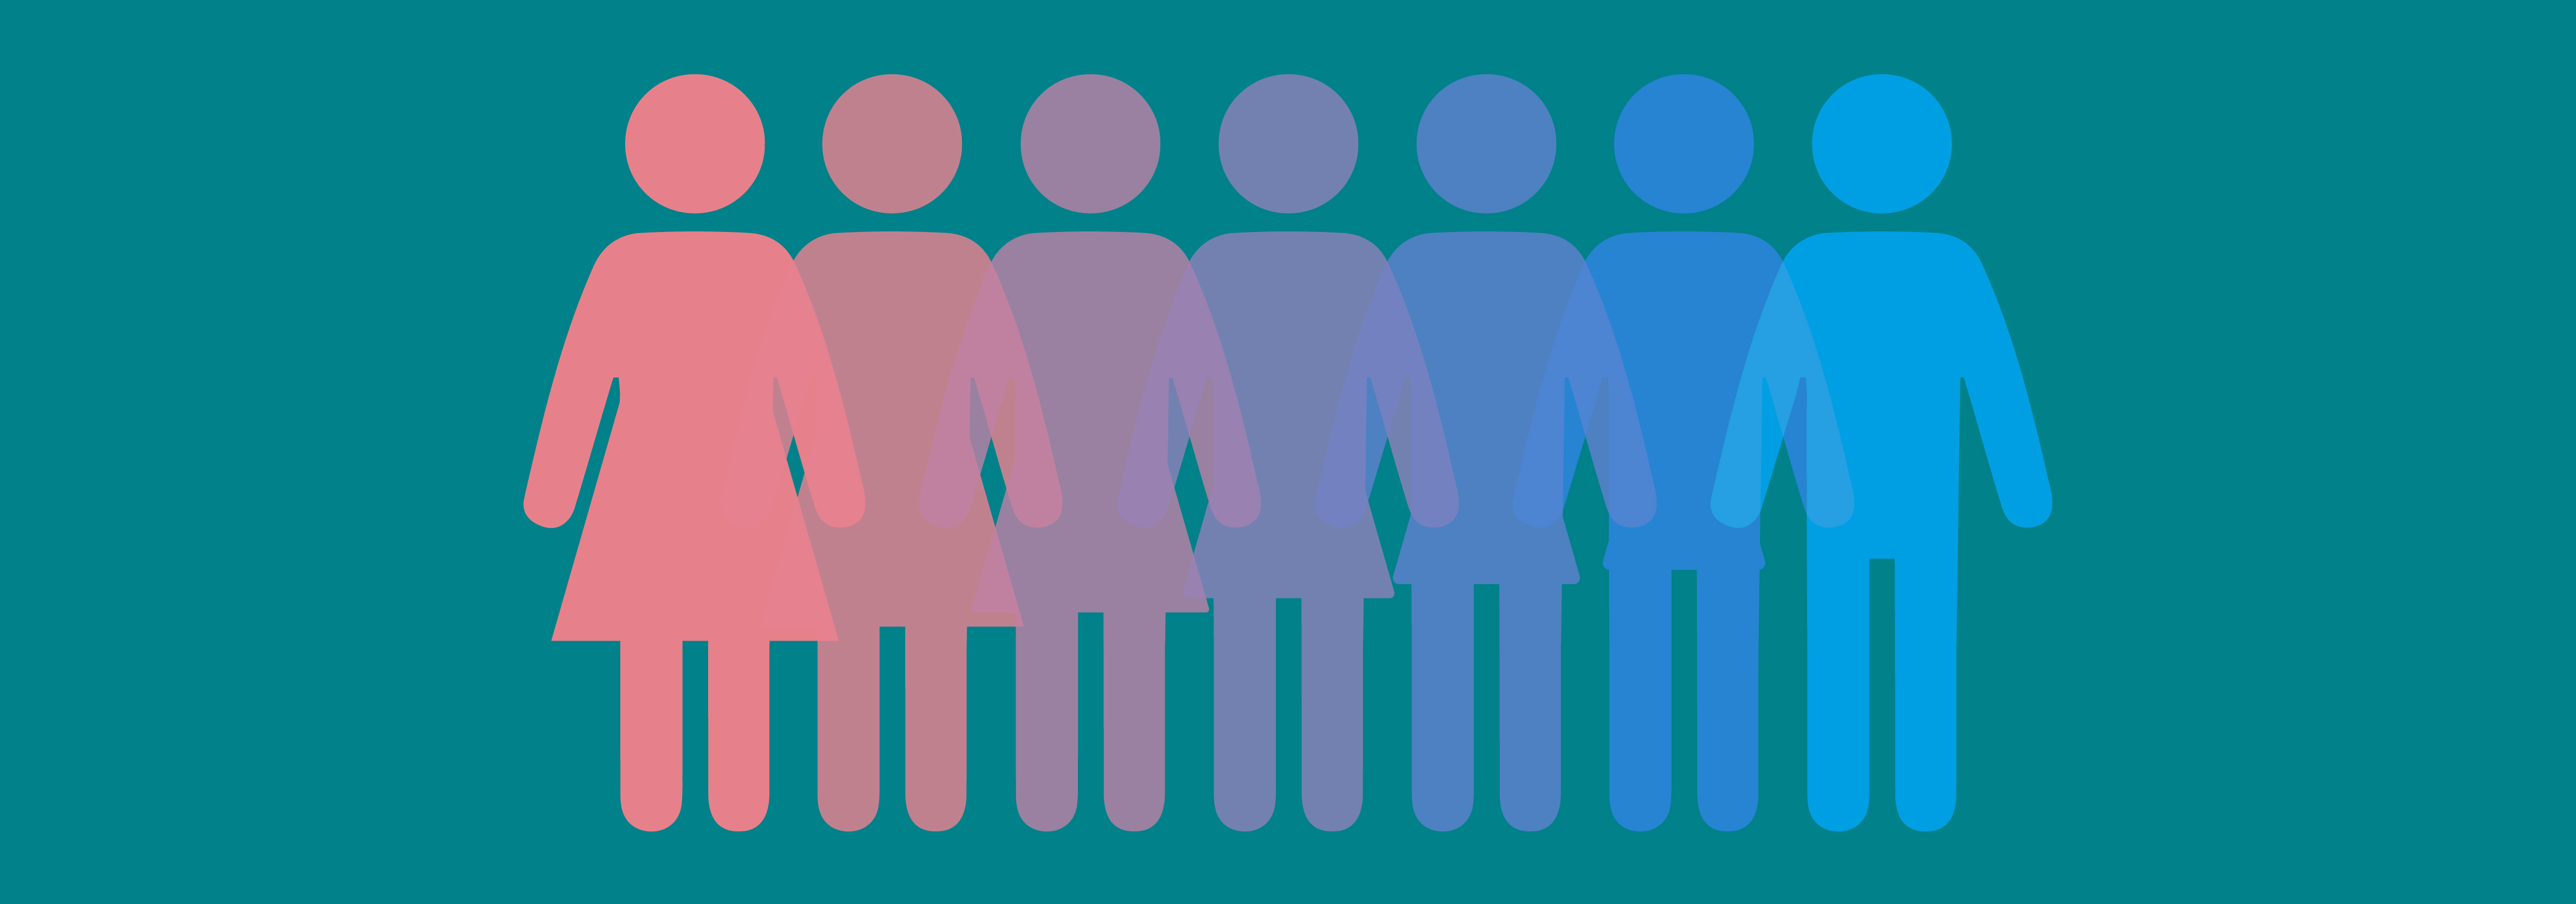 Center for Gender Health banner image